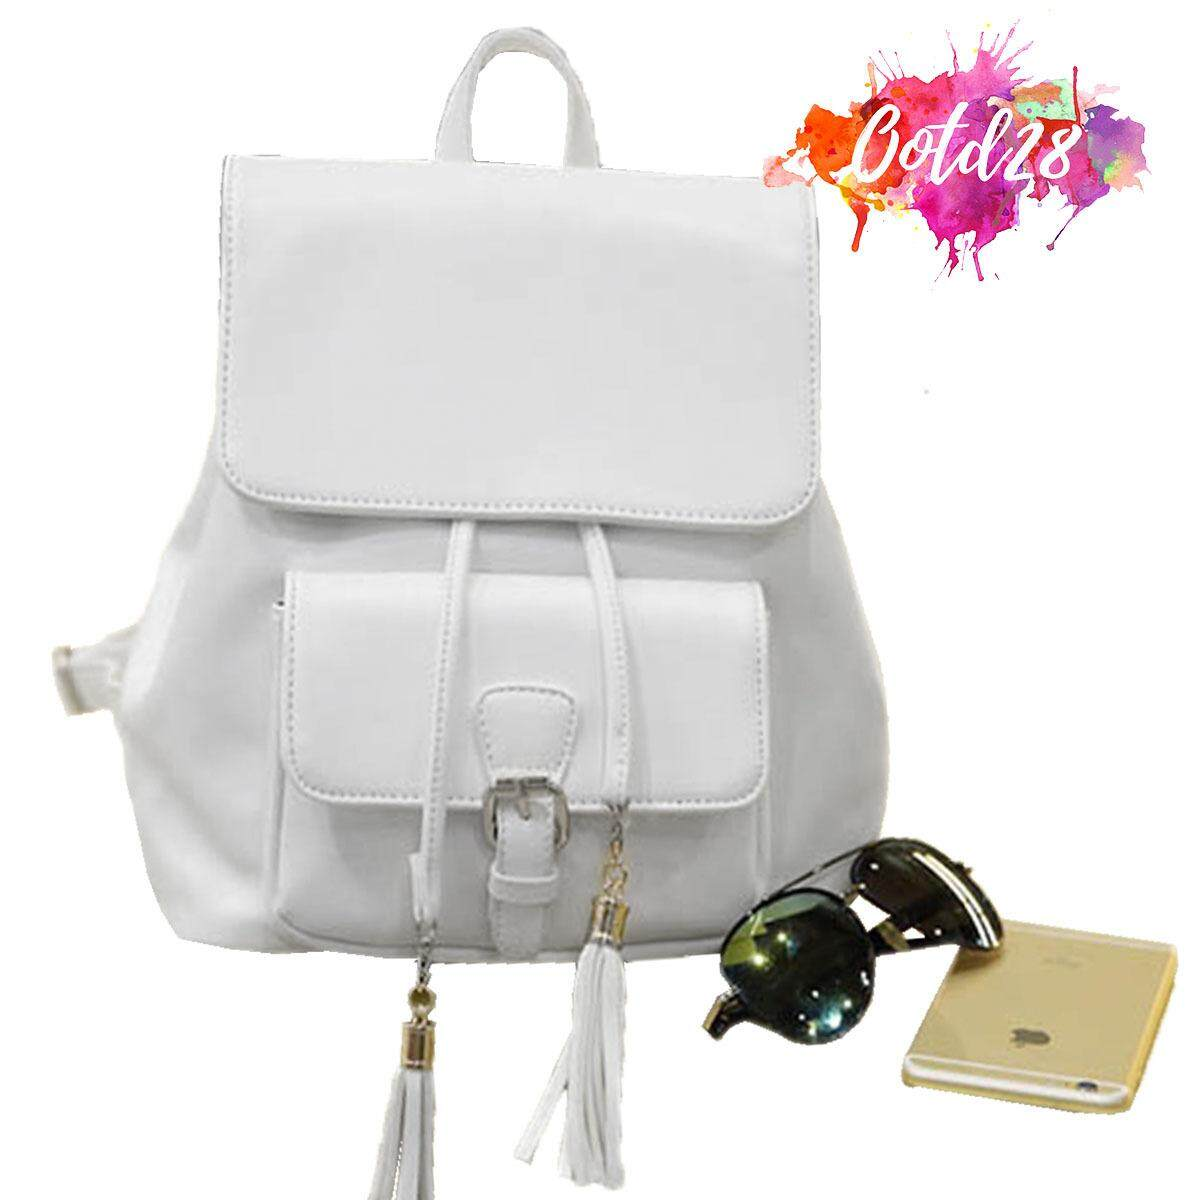 583b244fb6 OOTD28 329W Women Designer For Her Leather Backpack Bag White